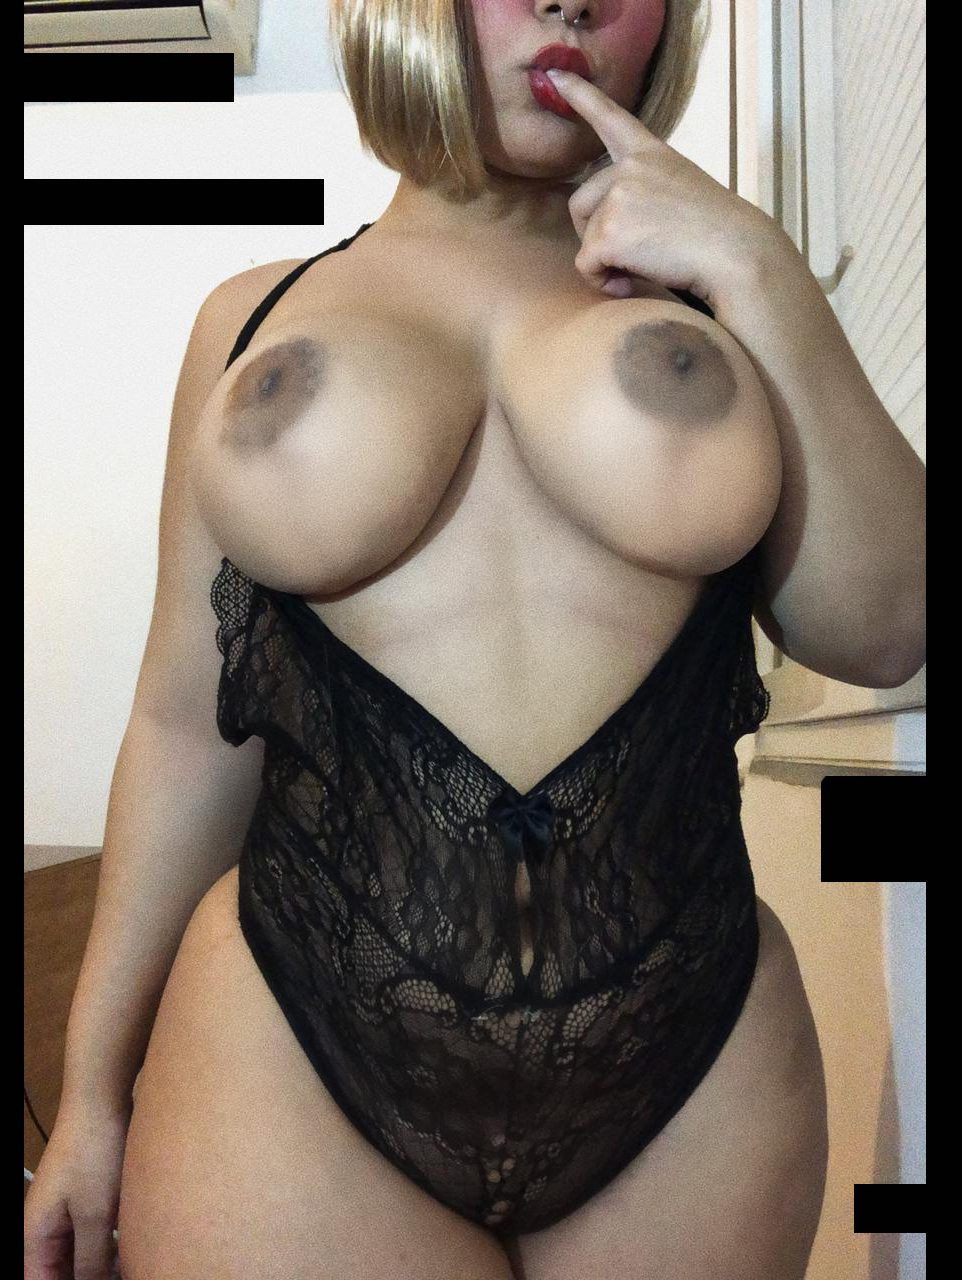 Victoria Matosa onlyfans nudes leaks thefappening.nu 4